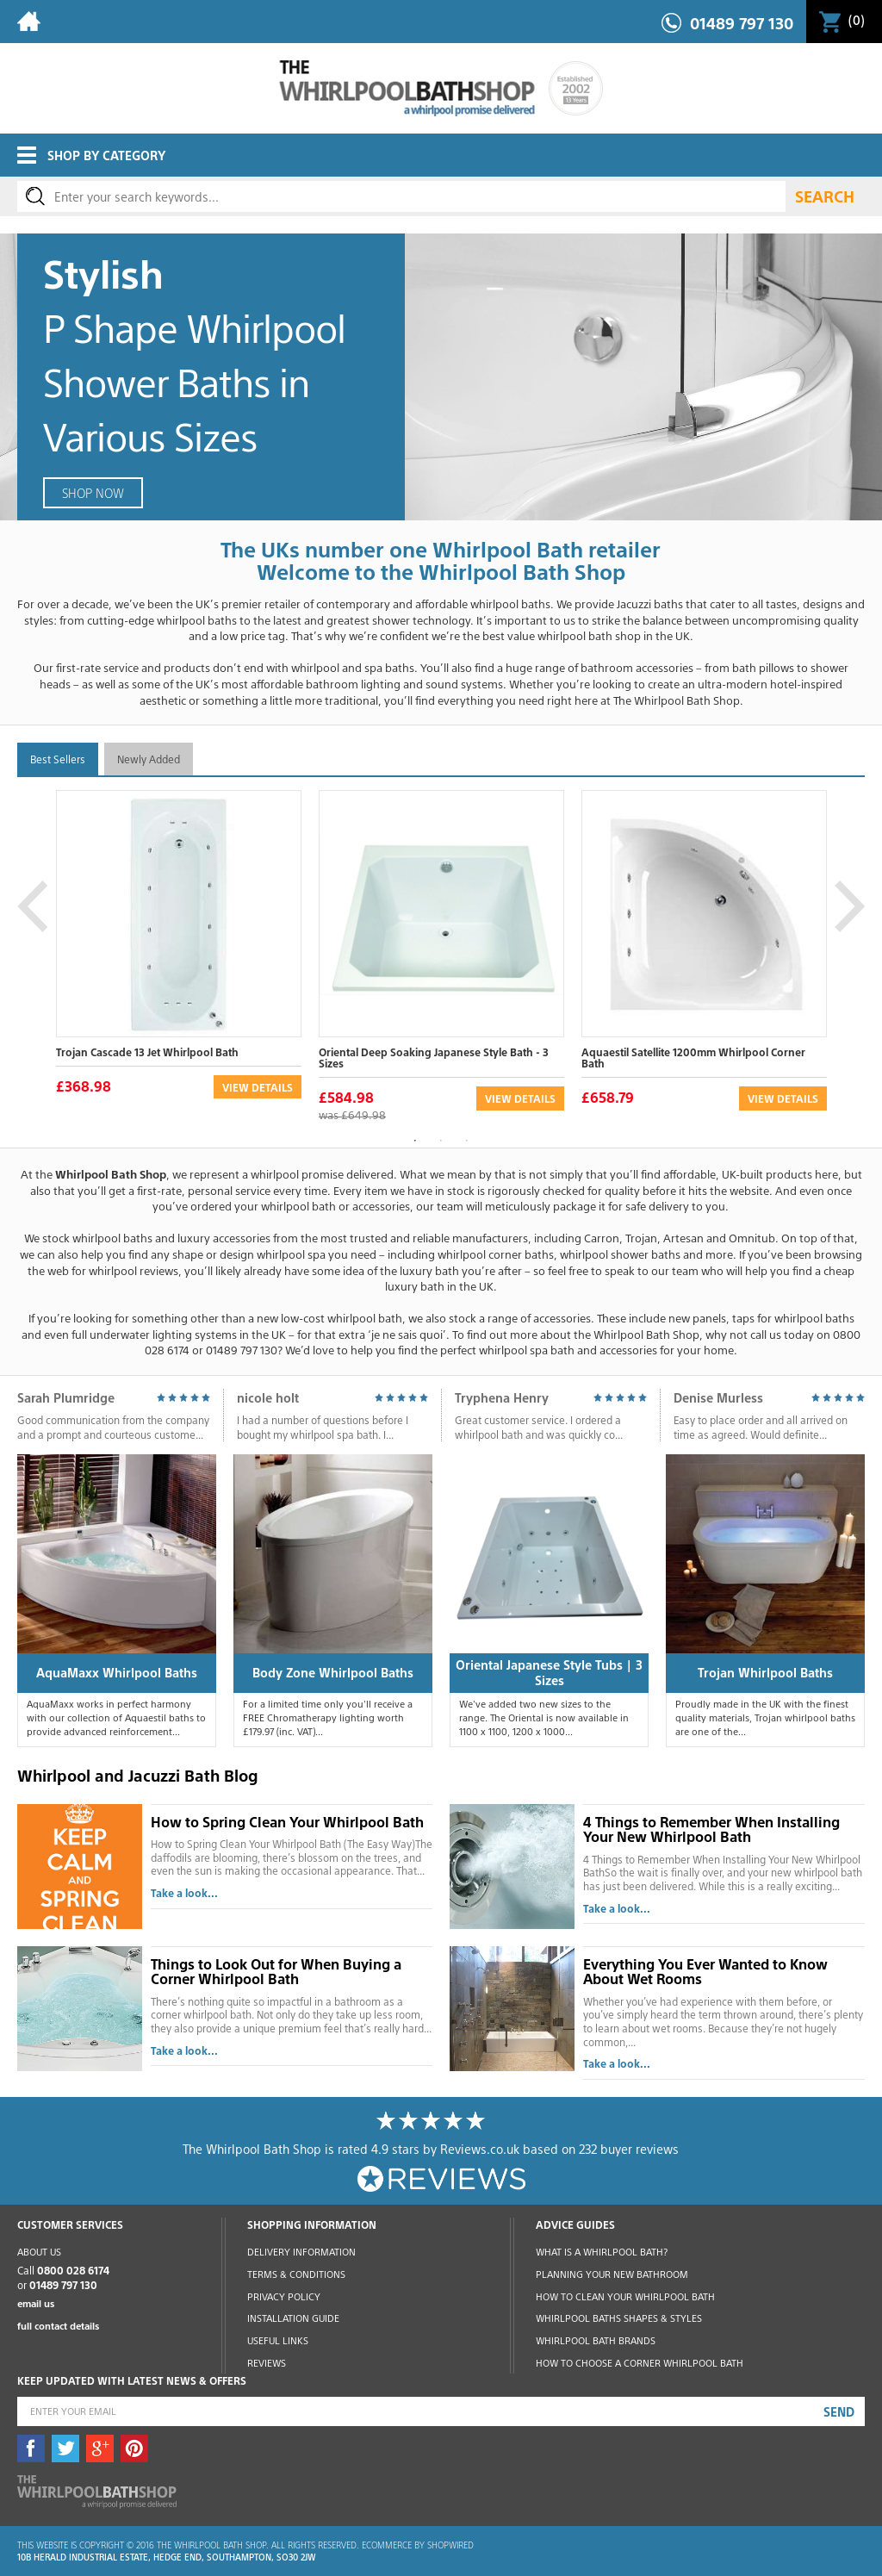 Whirlpool Bath Shop Competitors, Revenue and Employees - Owler ...